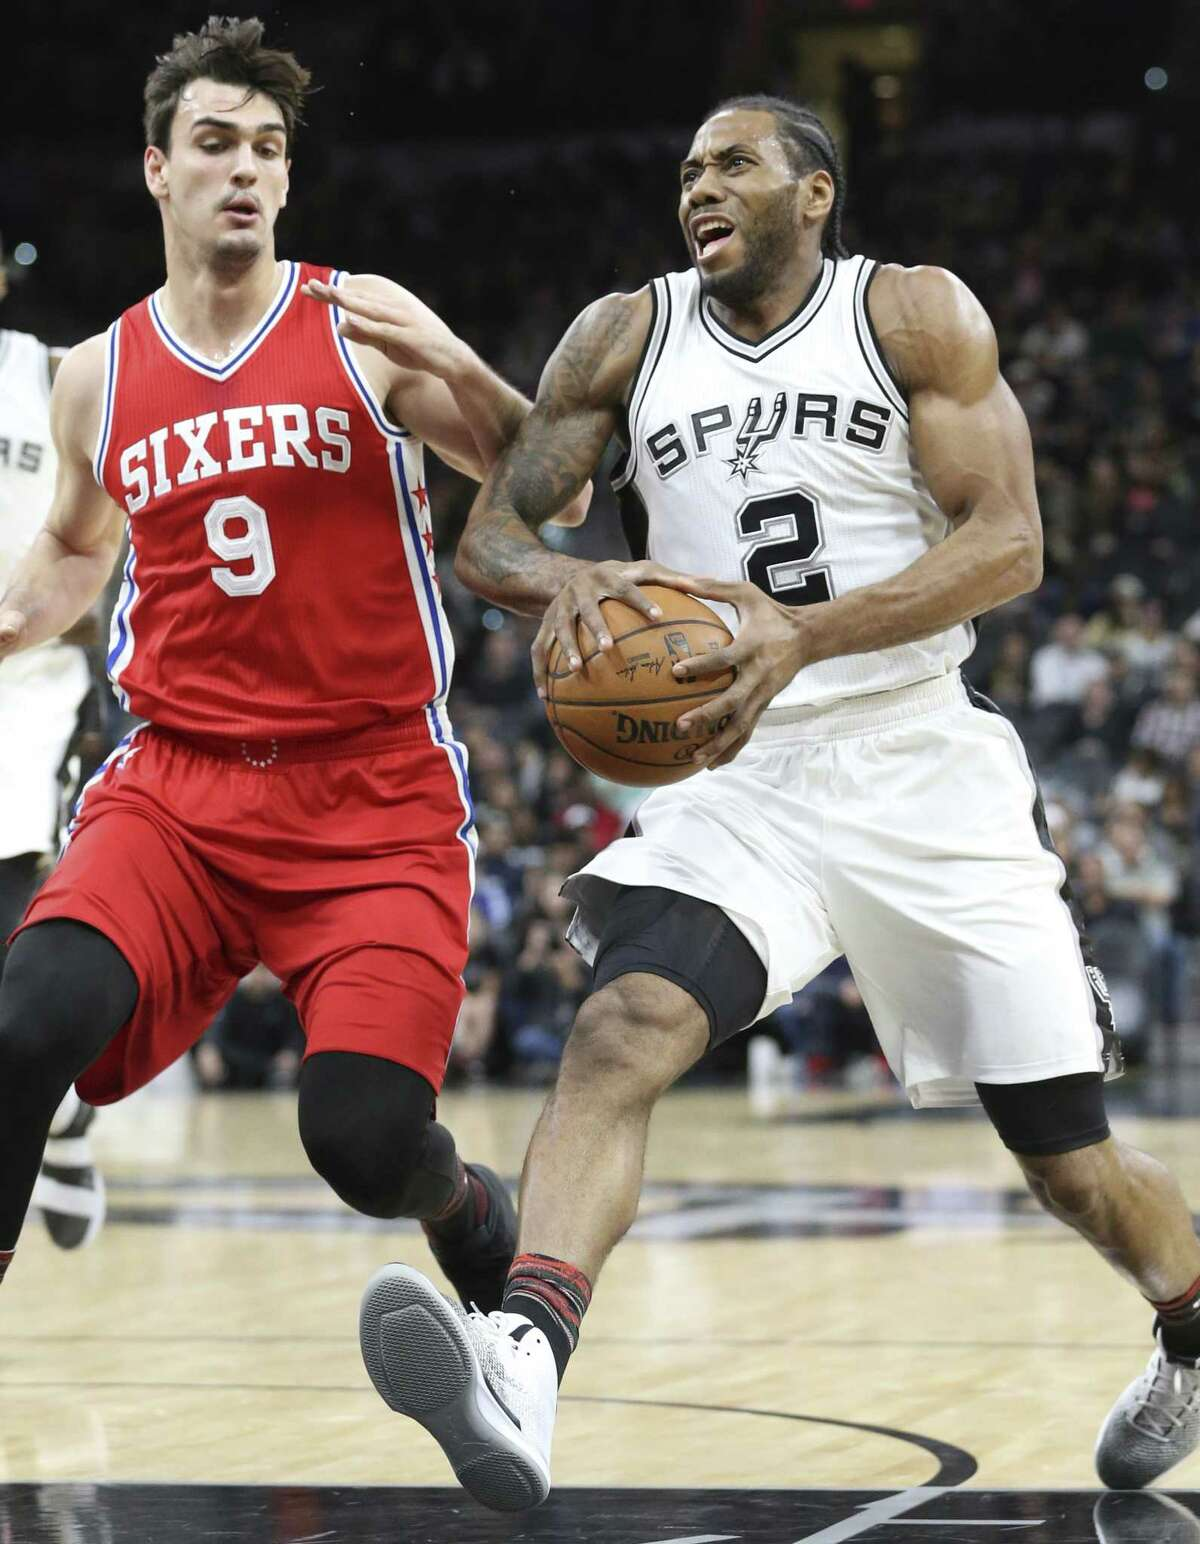 Kawhi Leonard heaves into the defense of Dario Saric as the Spurs host the Sixers at the AT&T Center on February 2, 2017.